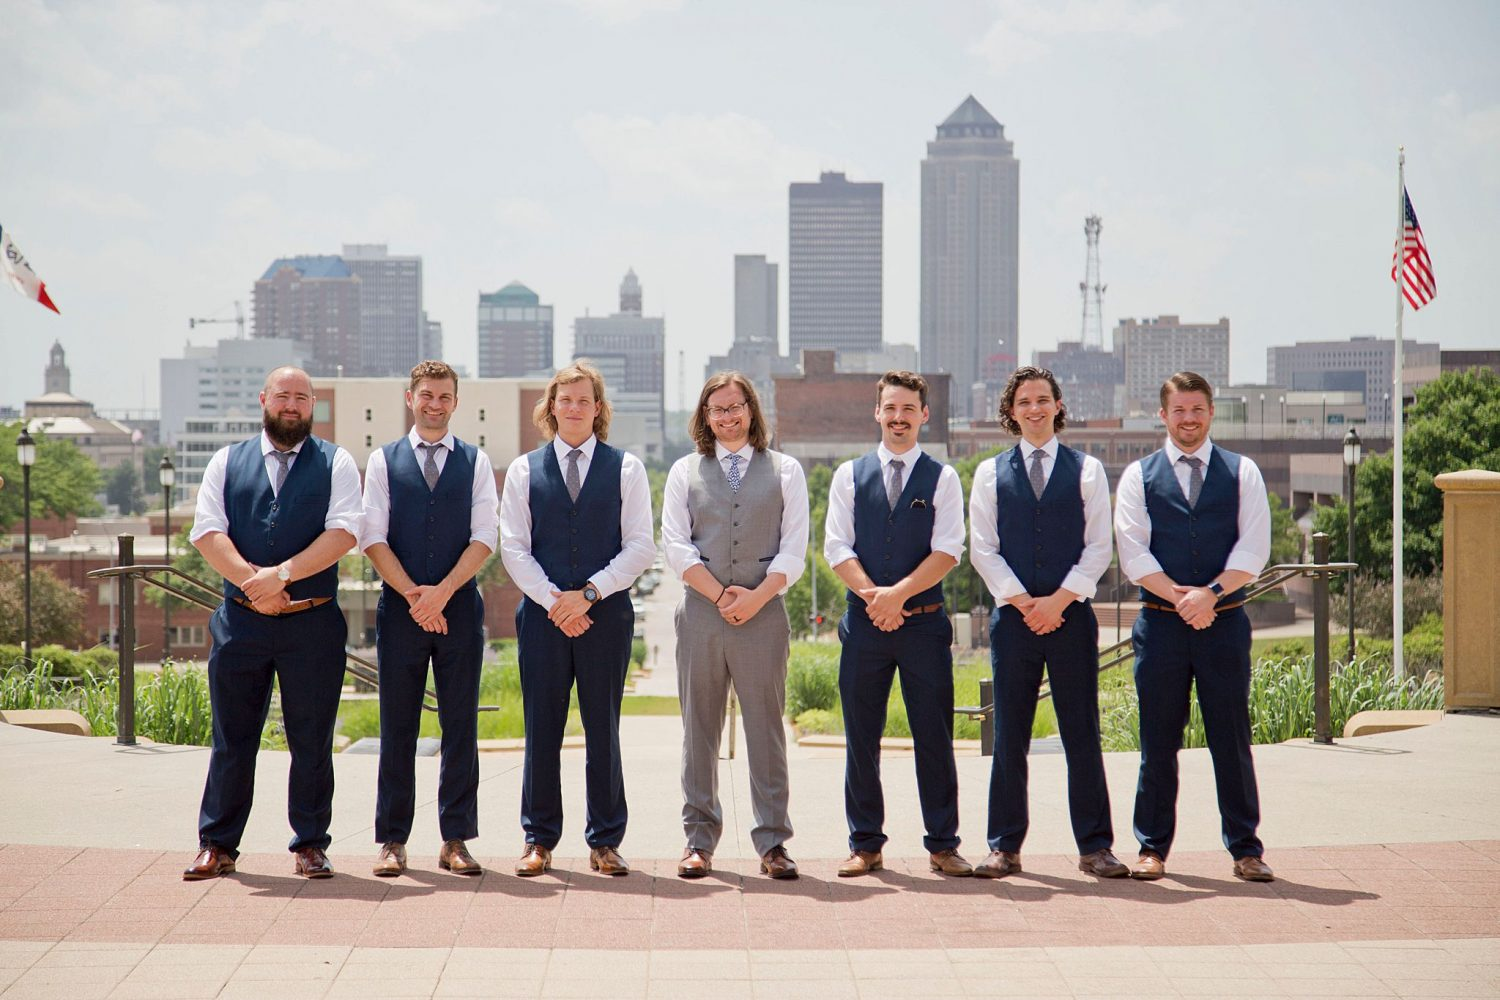 Groomsmen pose at the state capitol building with the skyline of Des Moines behind them.